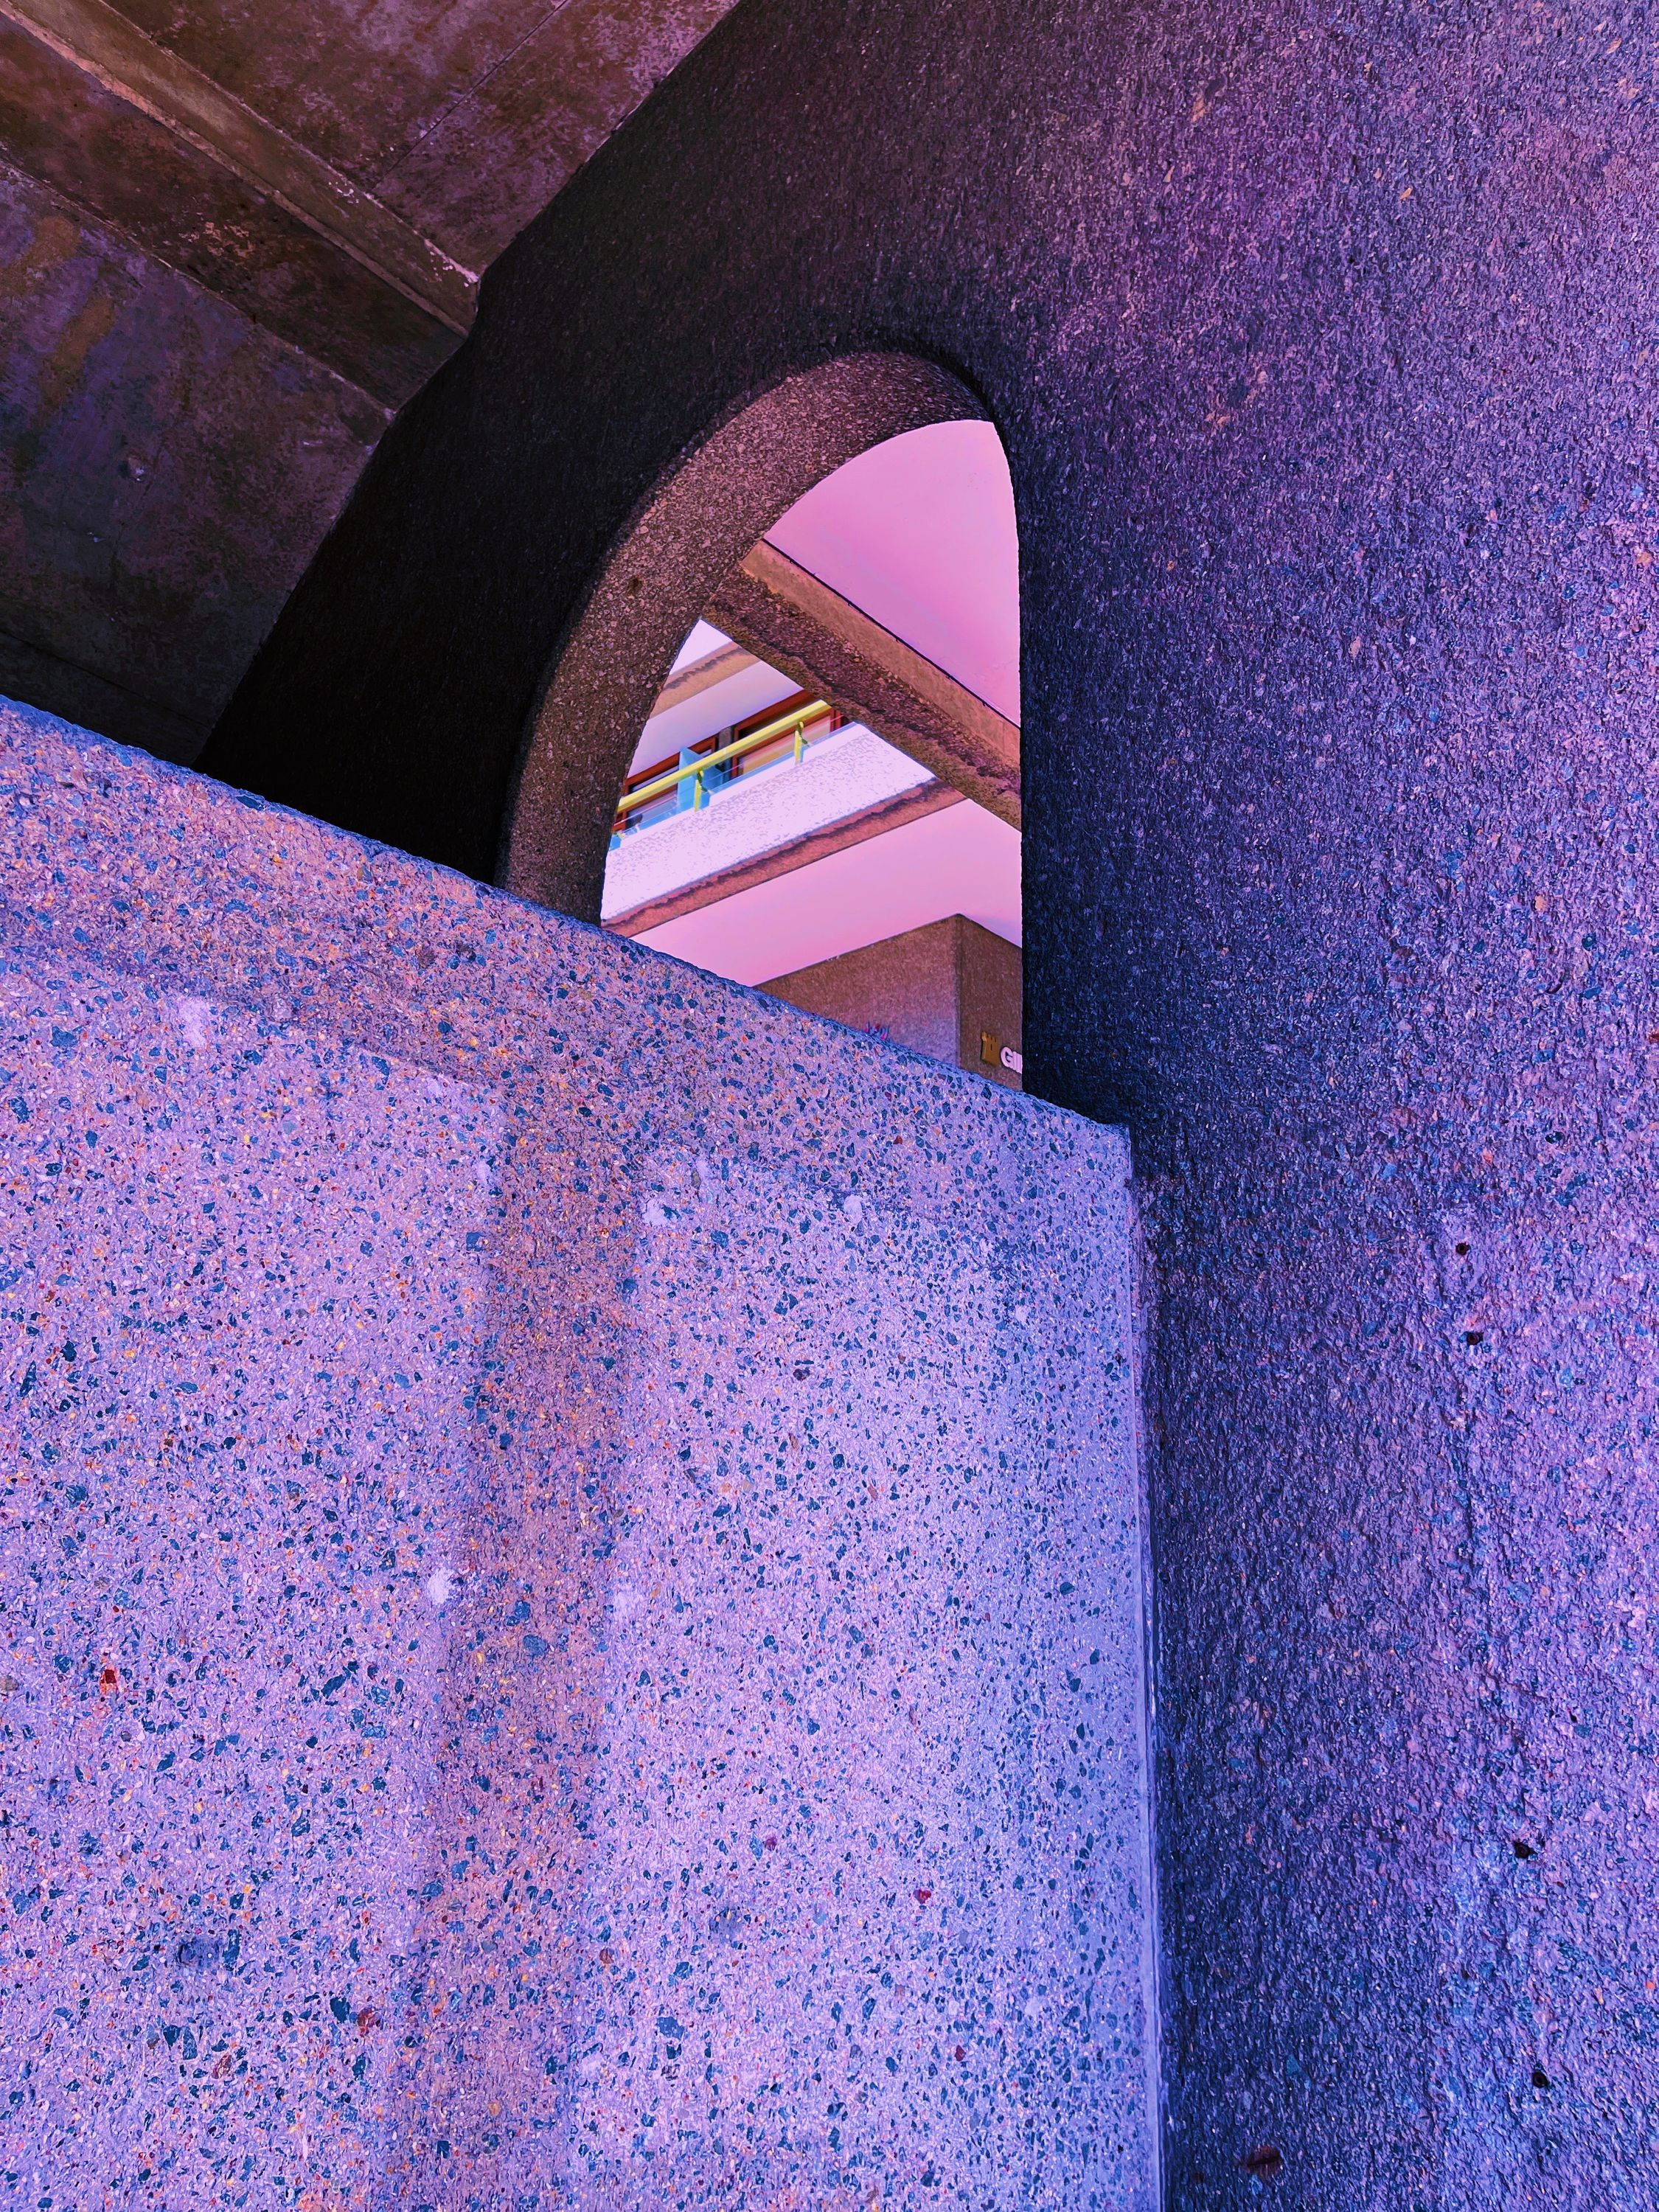 Arches and stairways